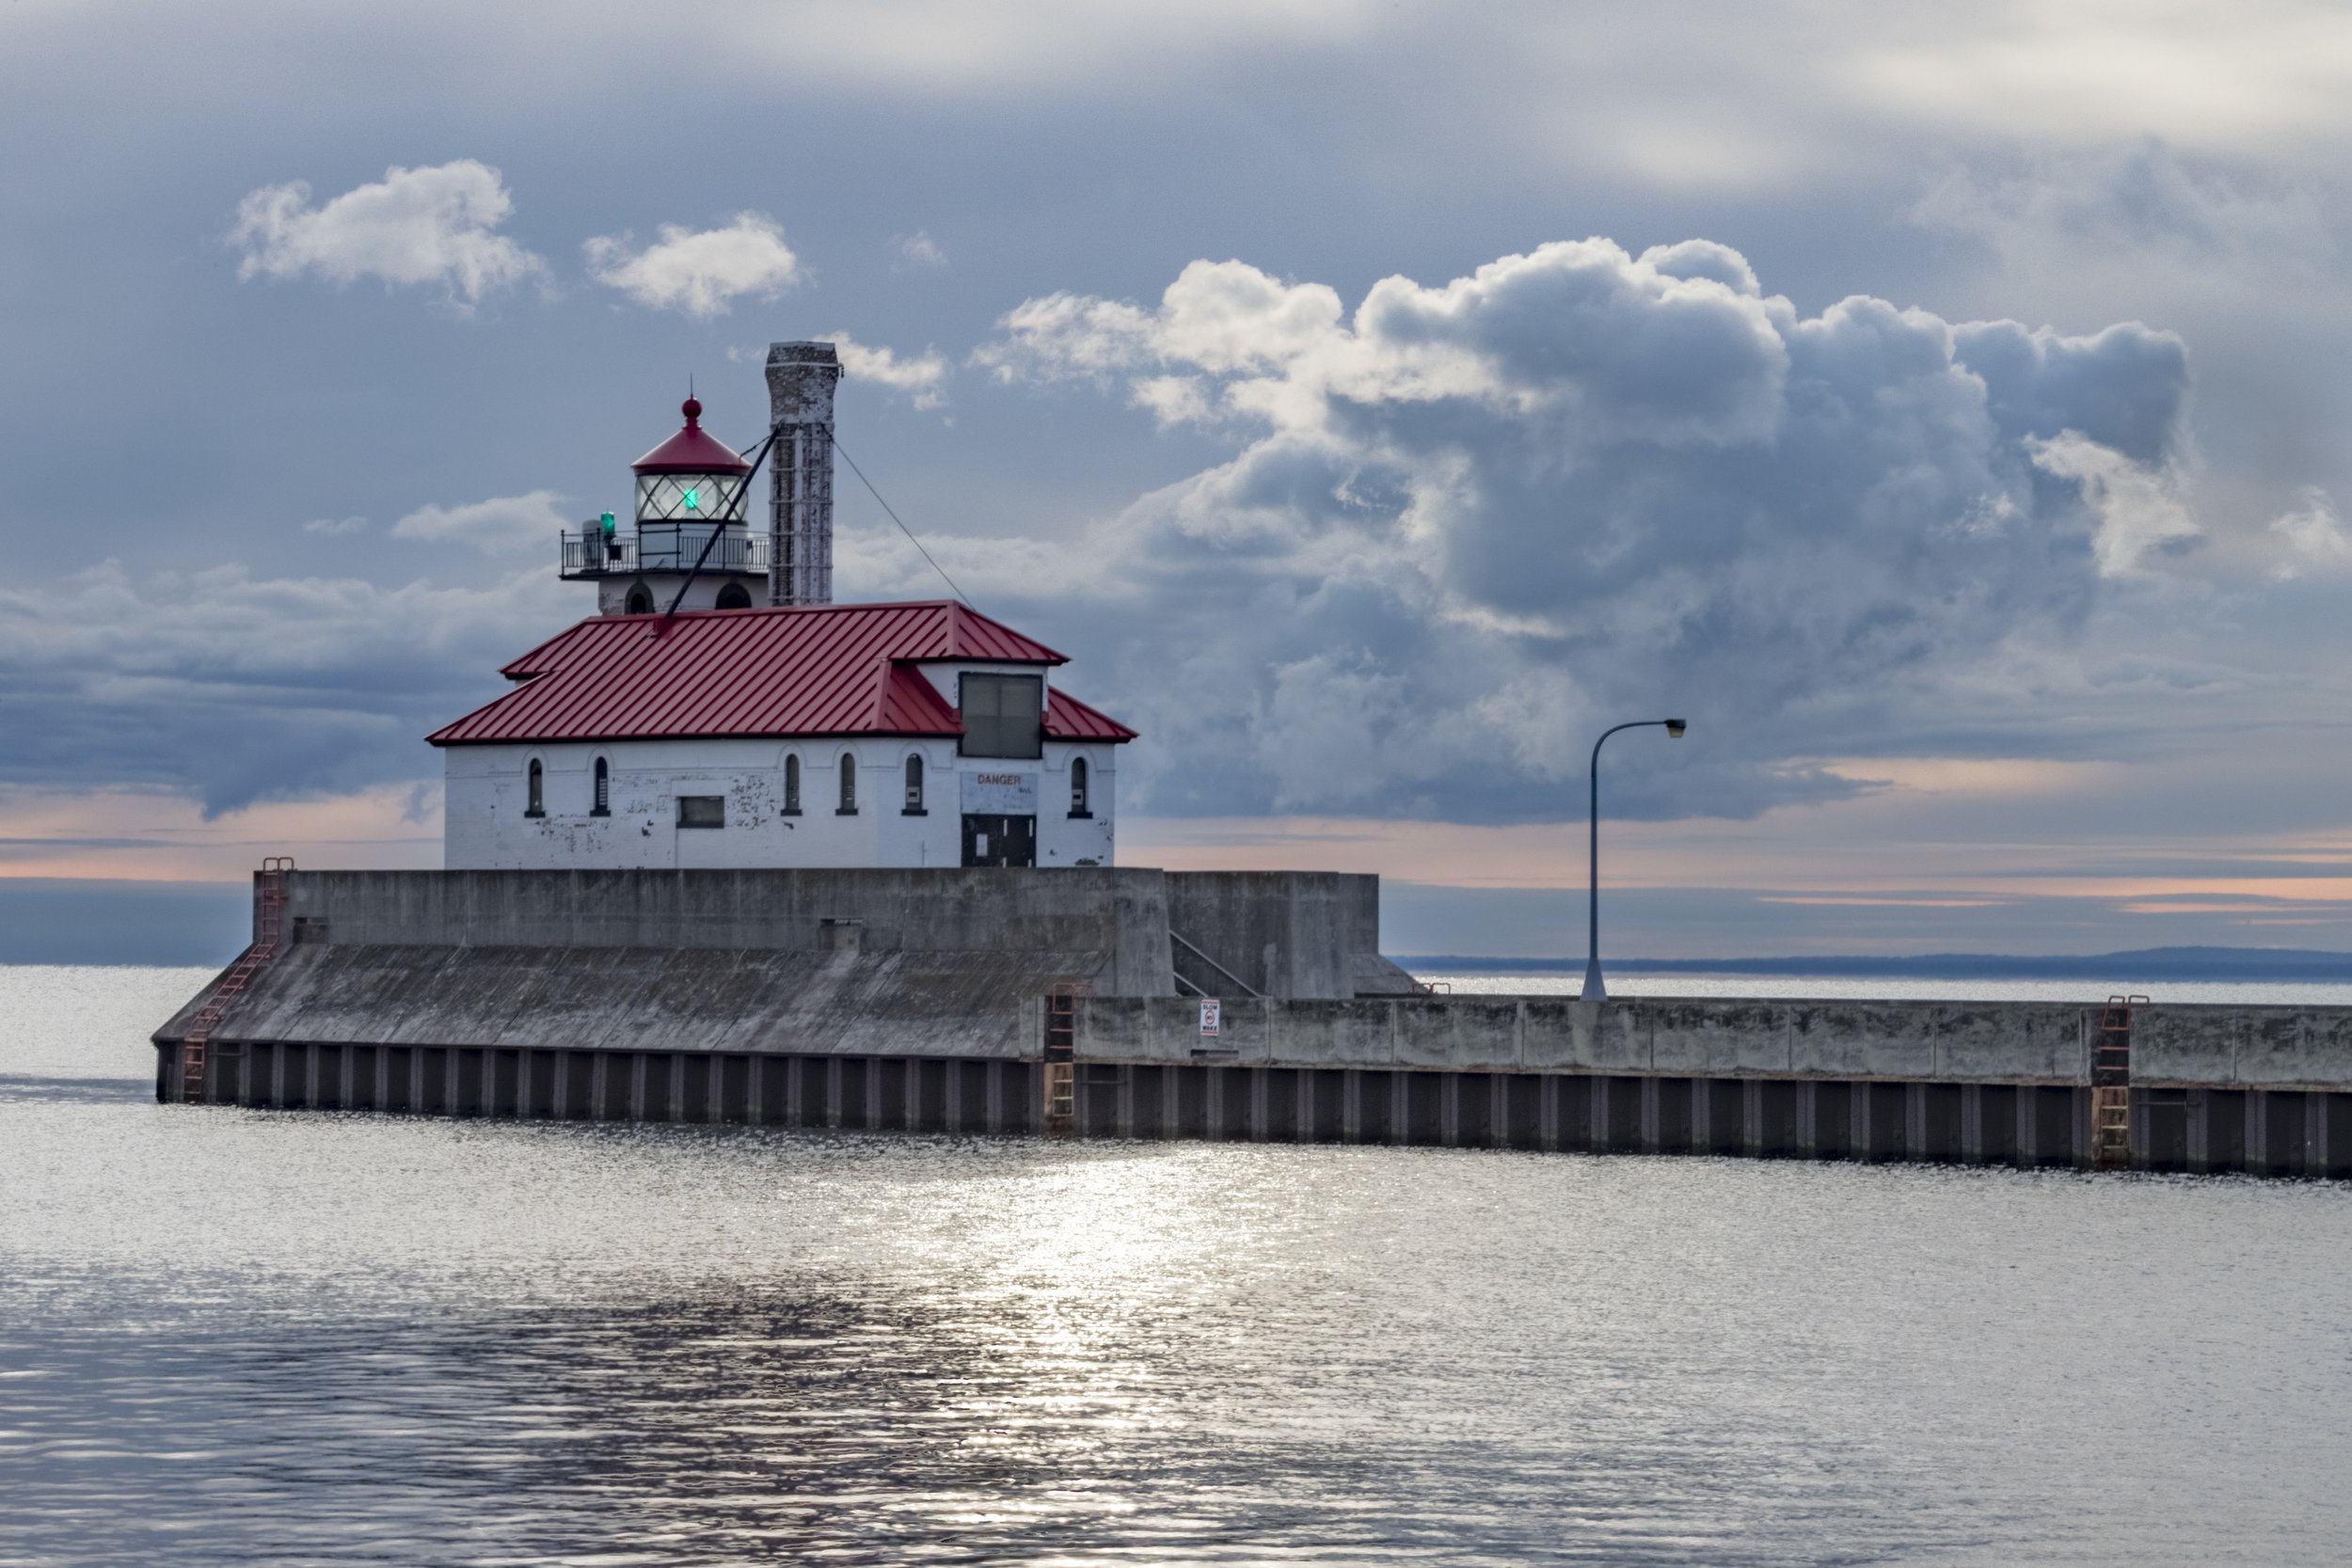 september 30, 2018  canal park - duluth, minnesota